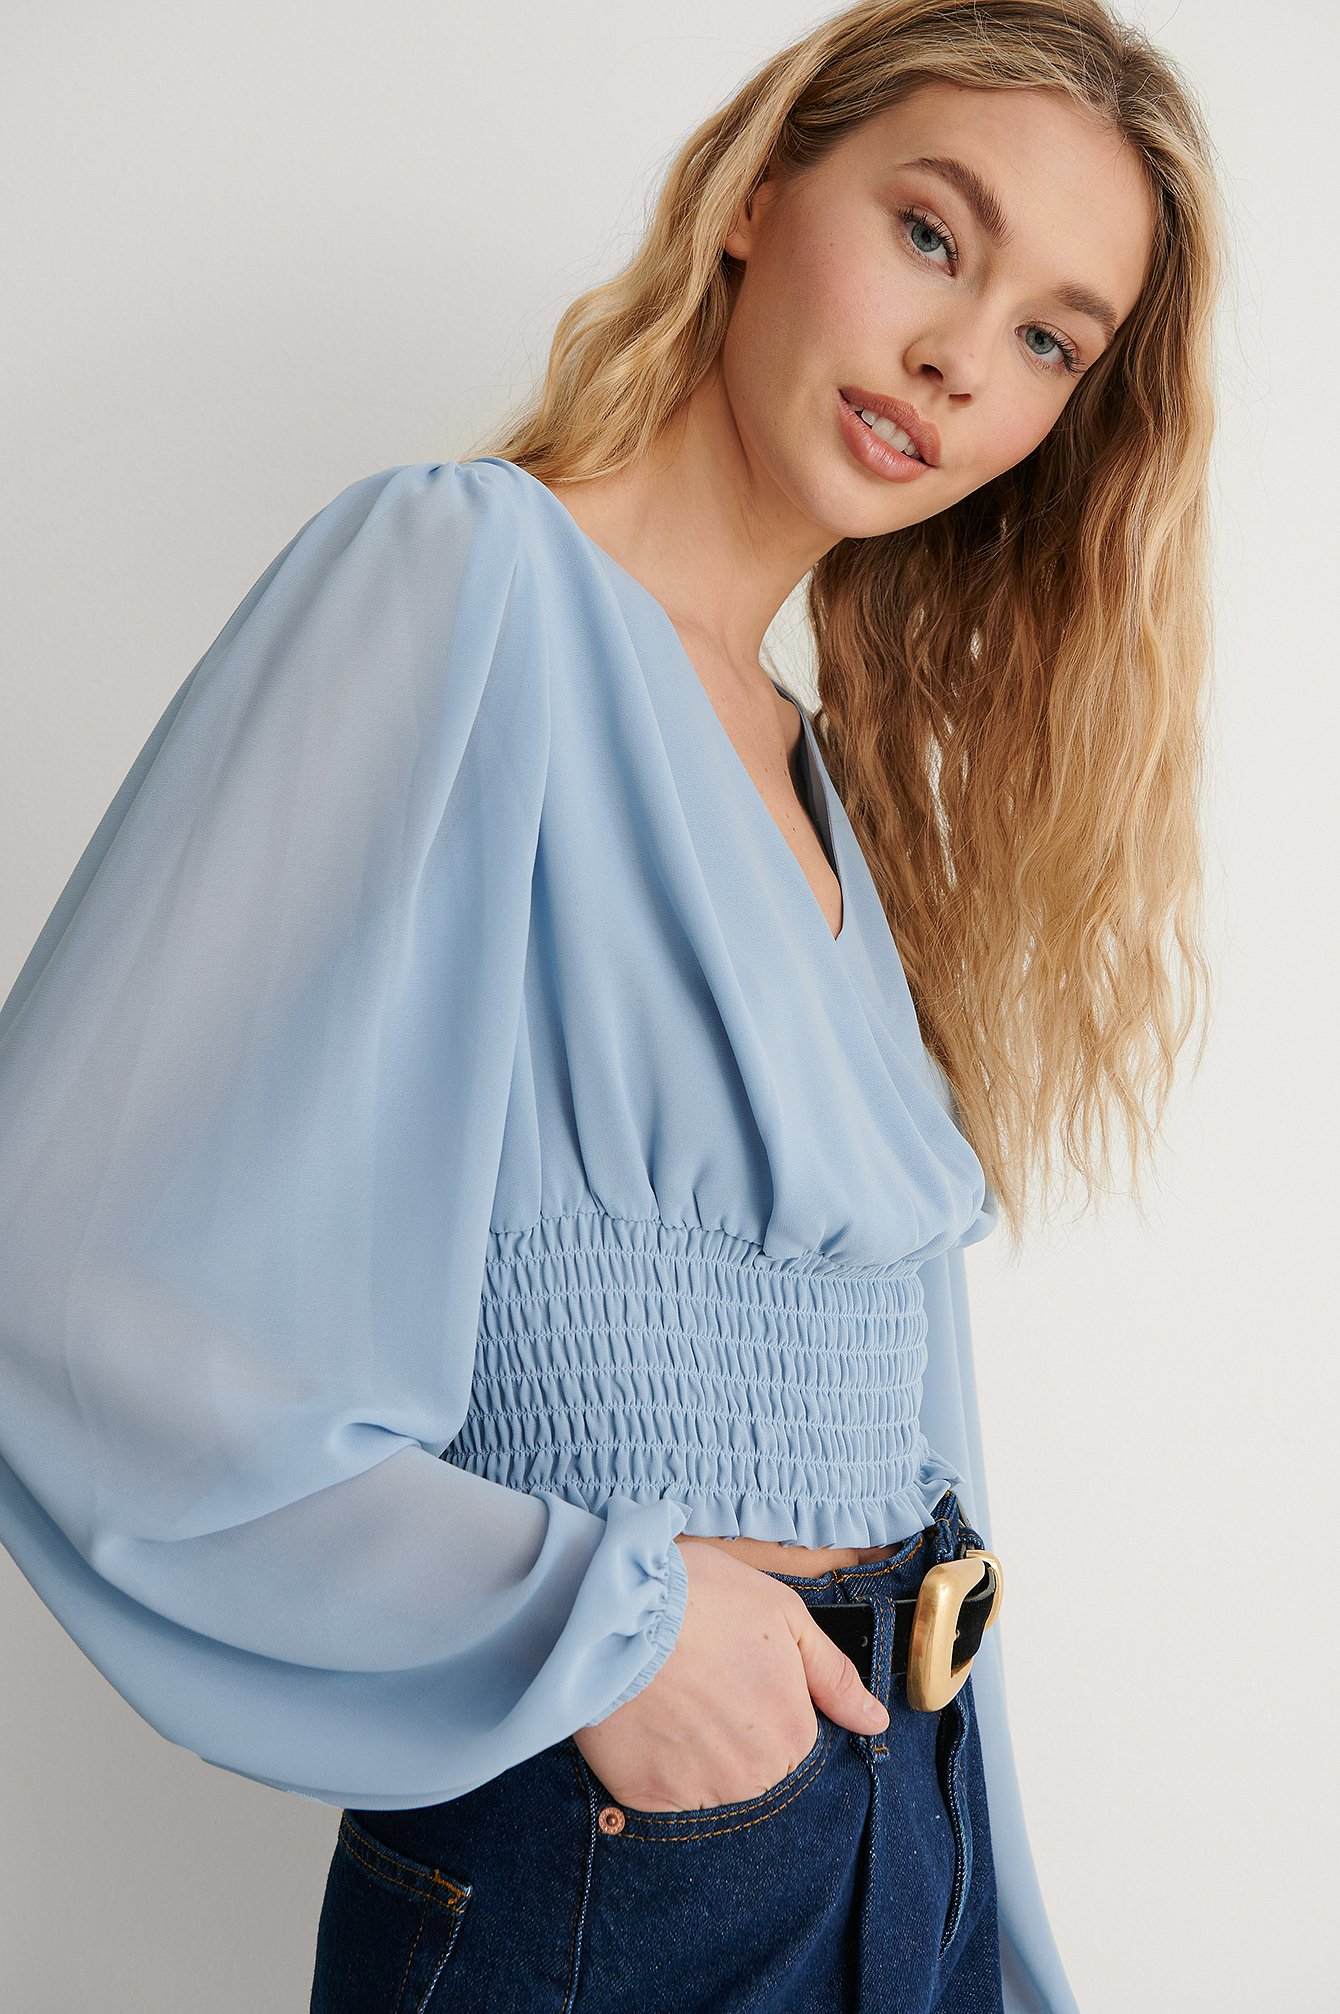 Dusty Blue Recycled Vid Blus Med Smock I Midjan